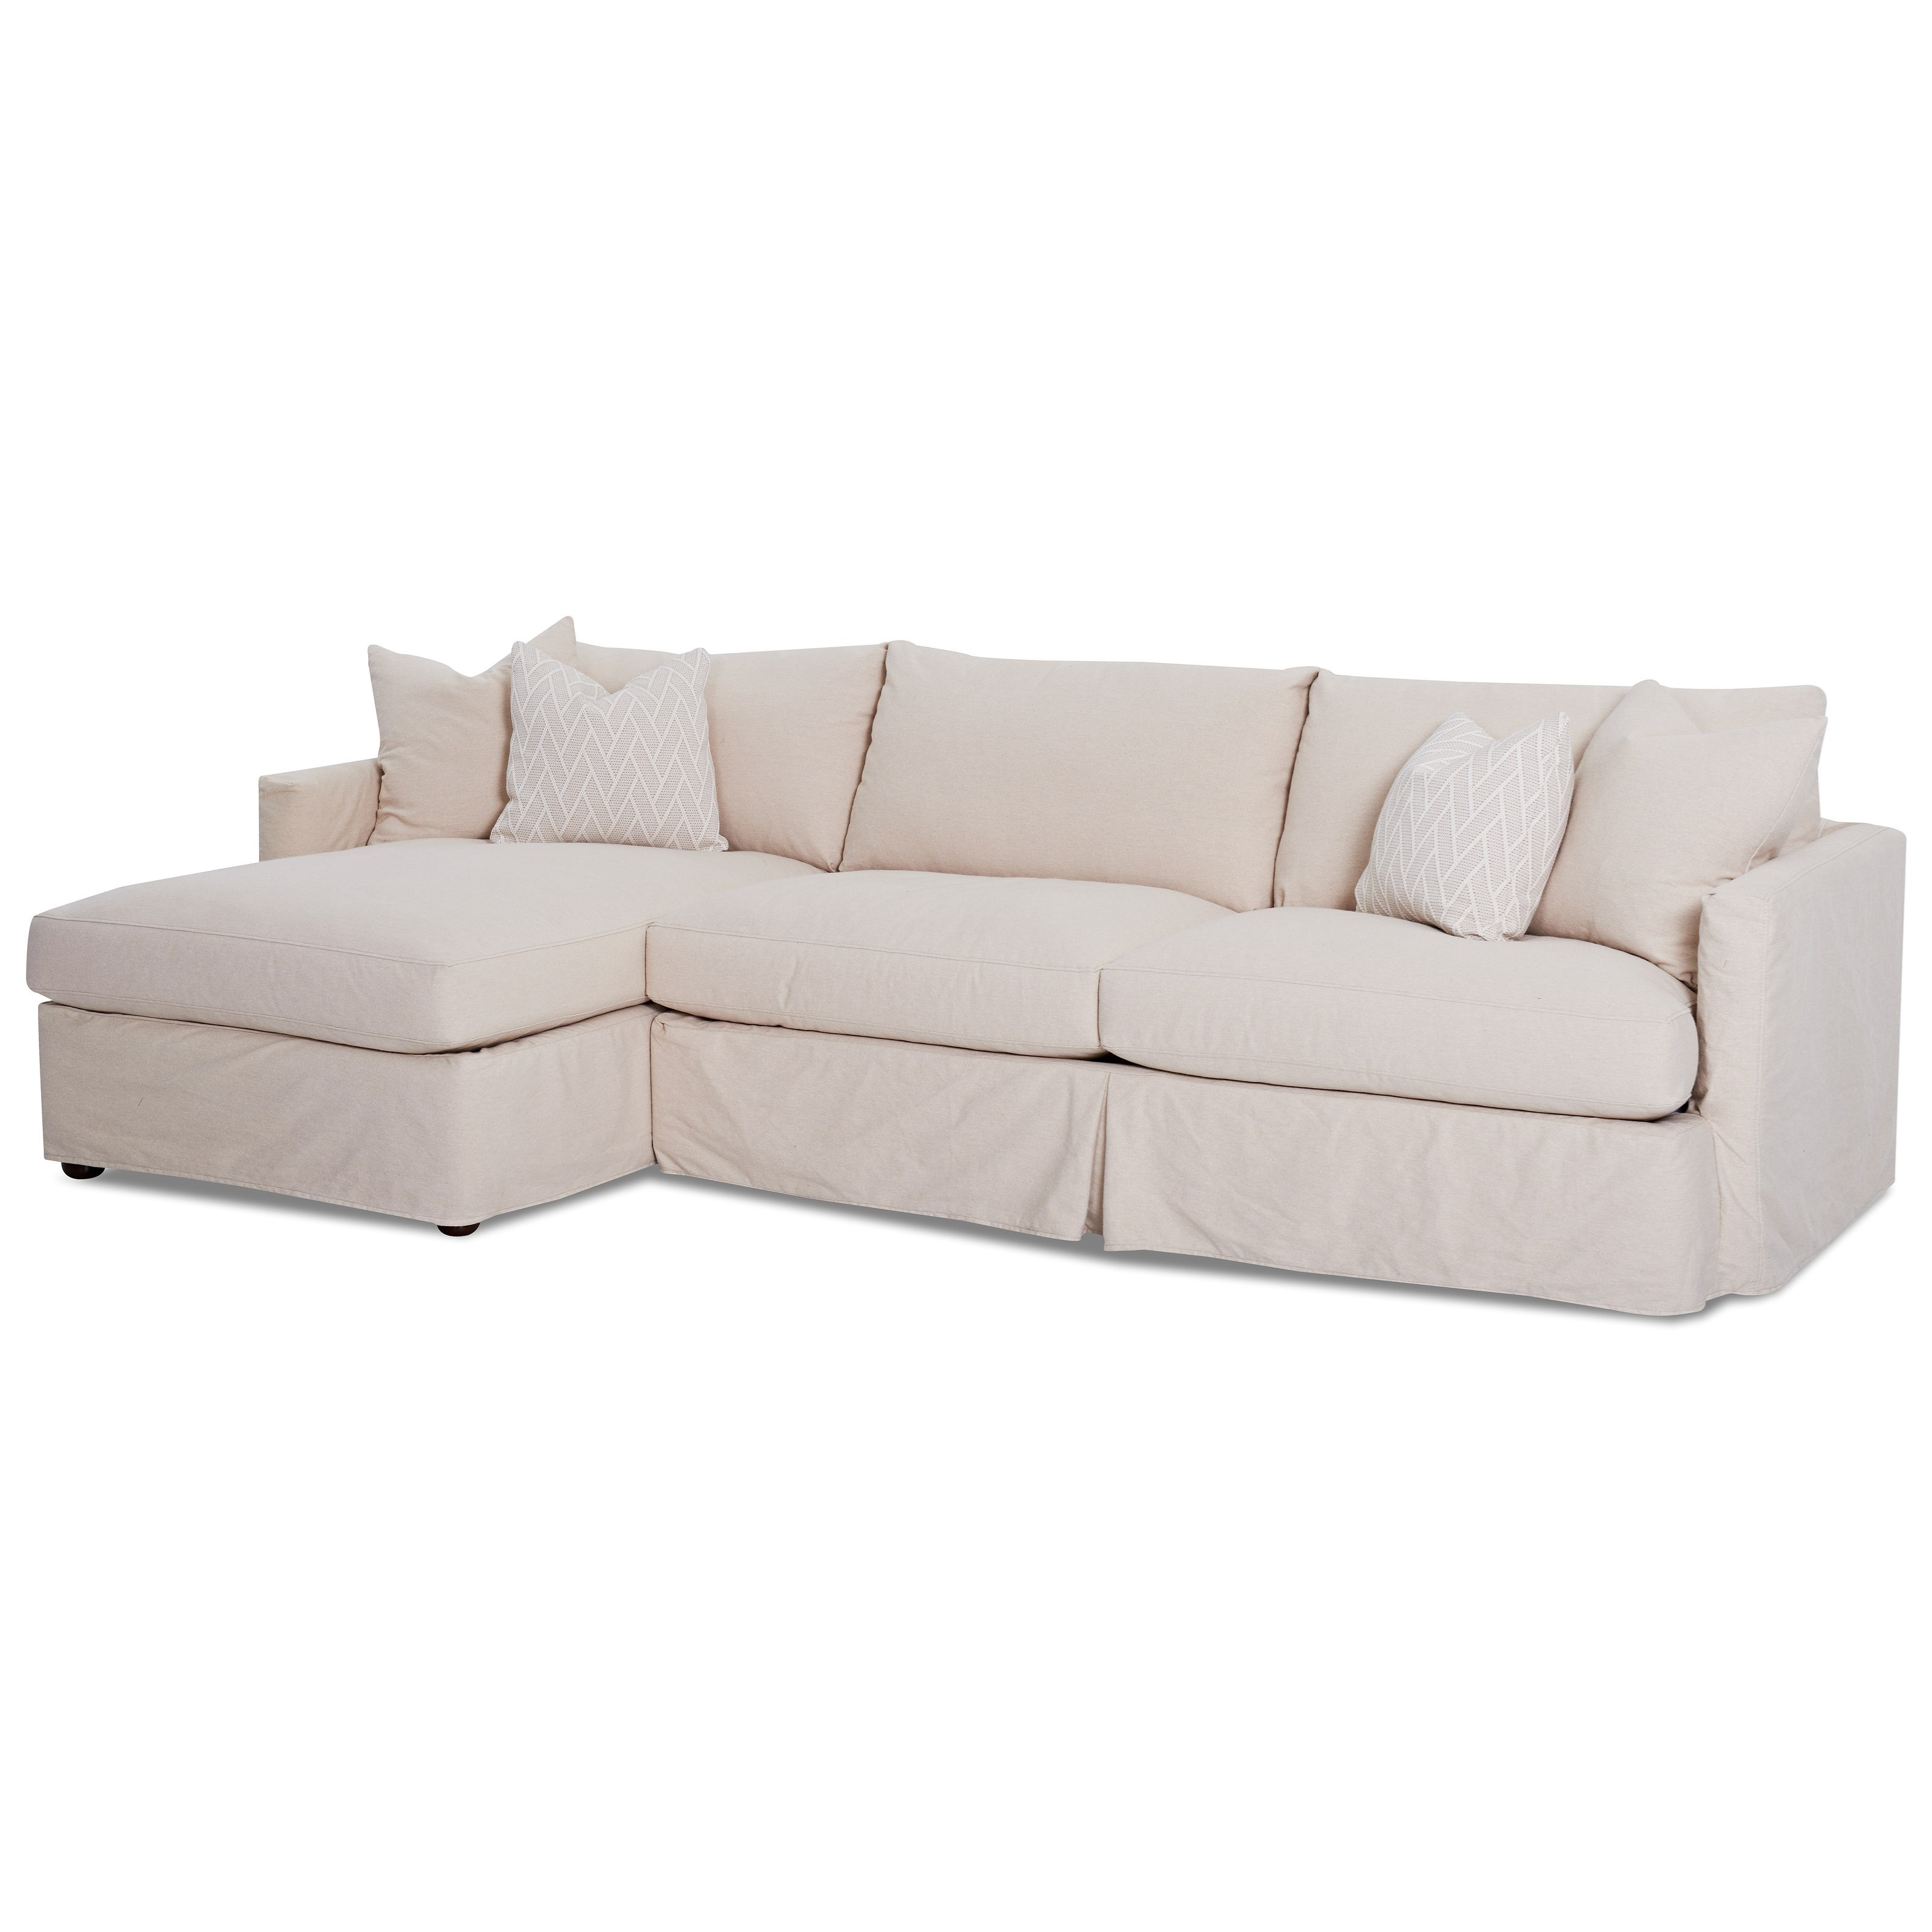 2 Pc Sectional Sofa with Slipcover and LAF Chaise by